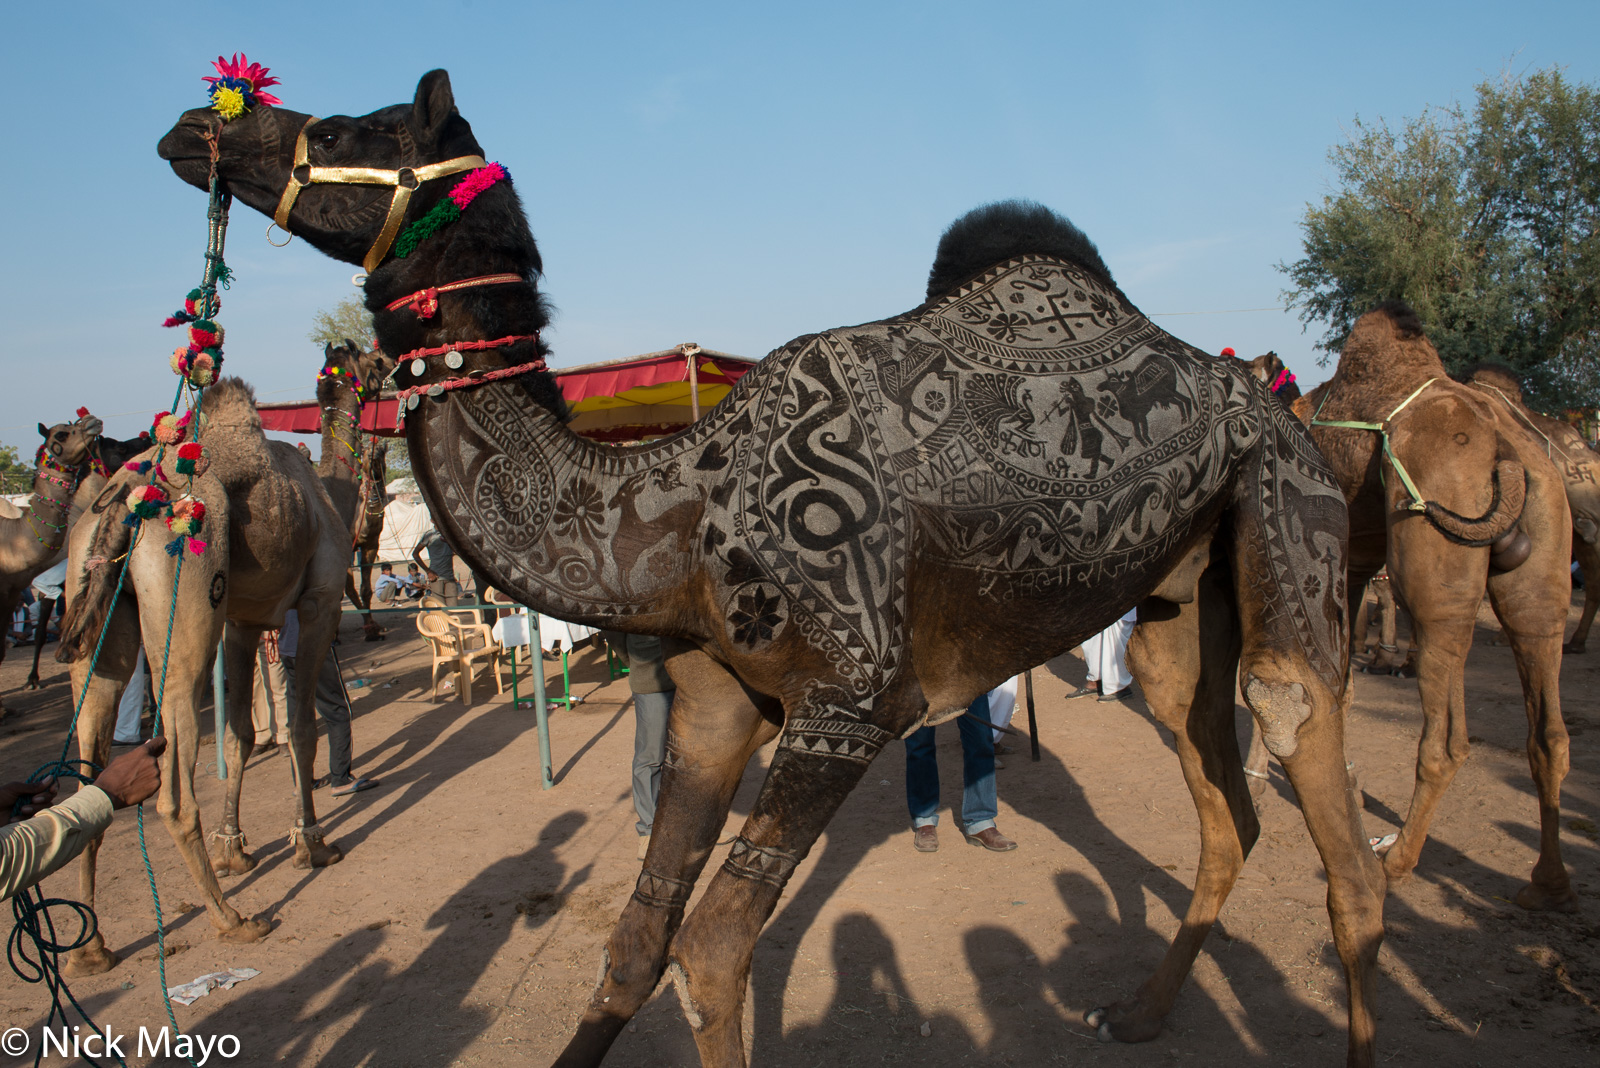 Camel, Festival, India, Rajasthan, photo